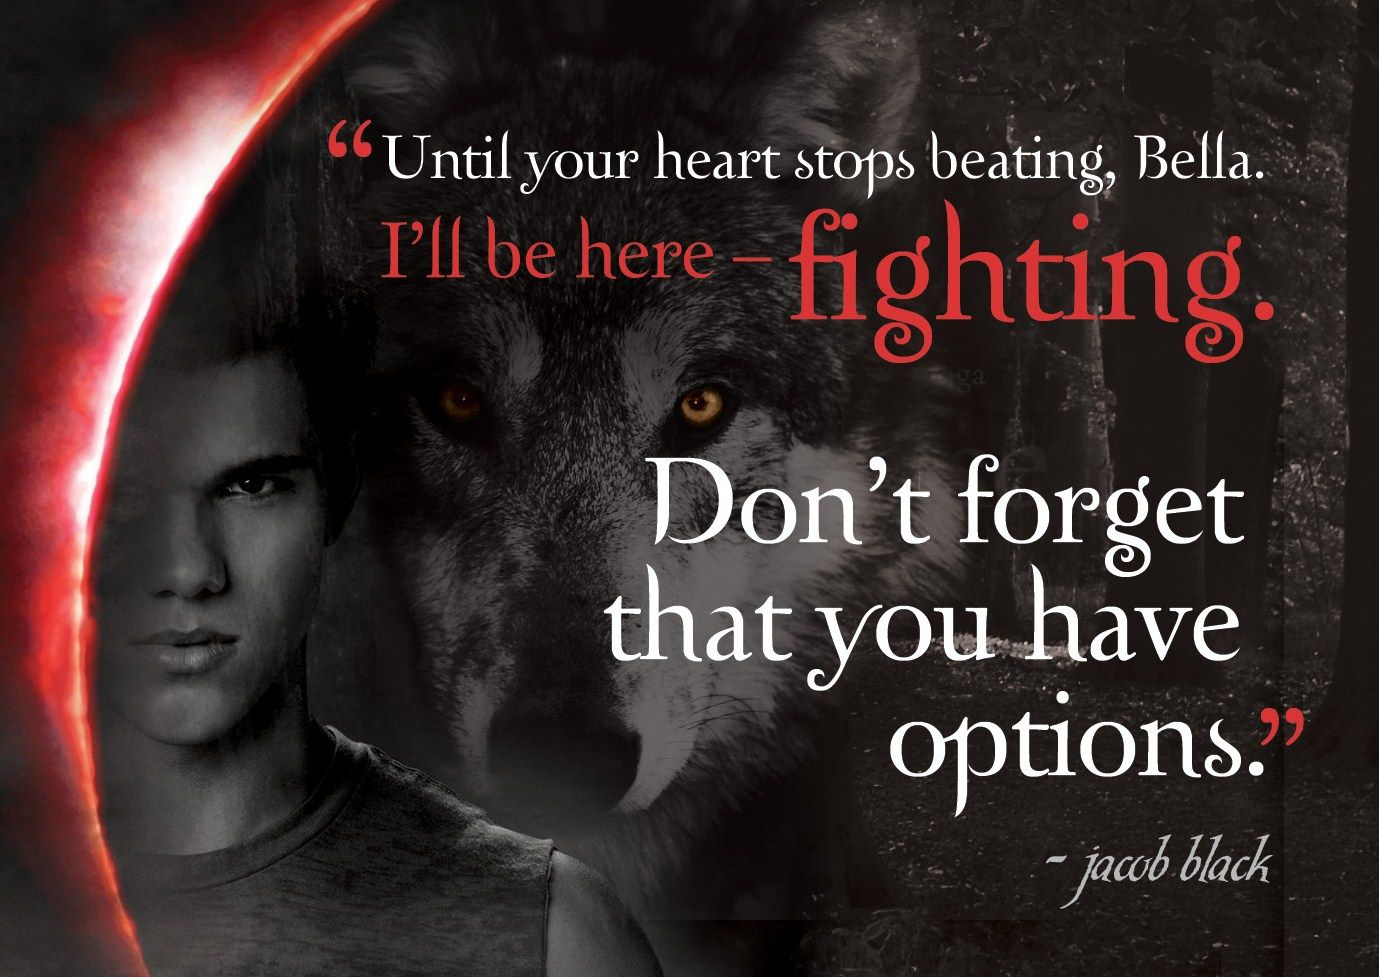 I'll be here fighting... Eclipse Quote Twilight